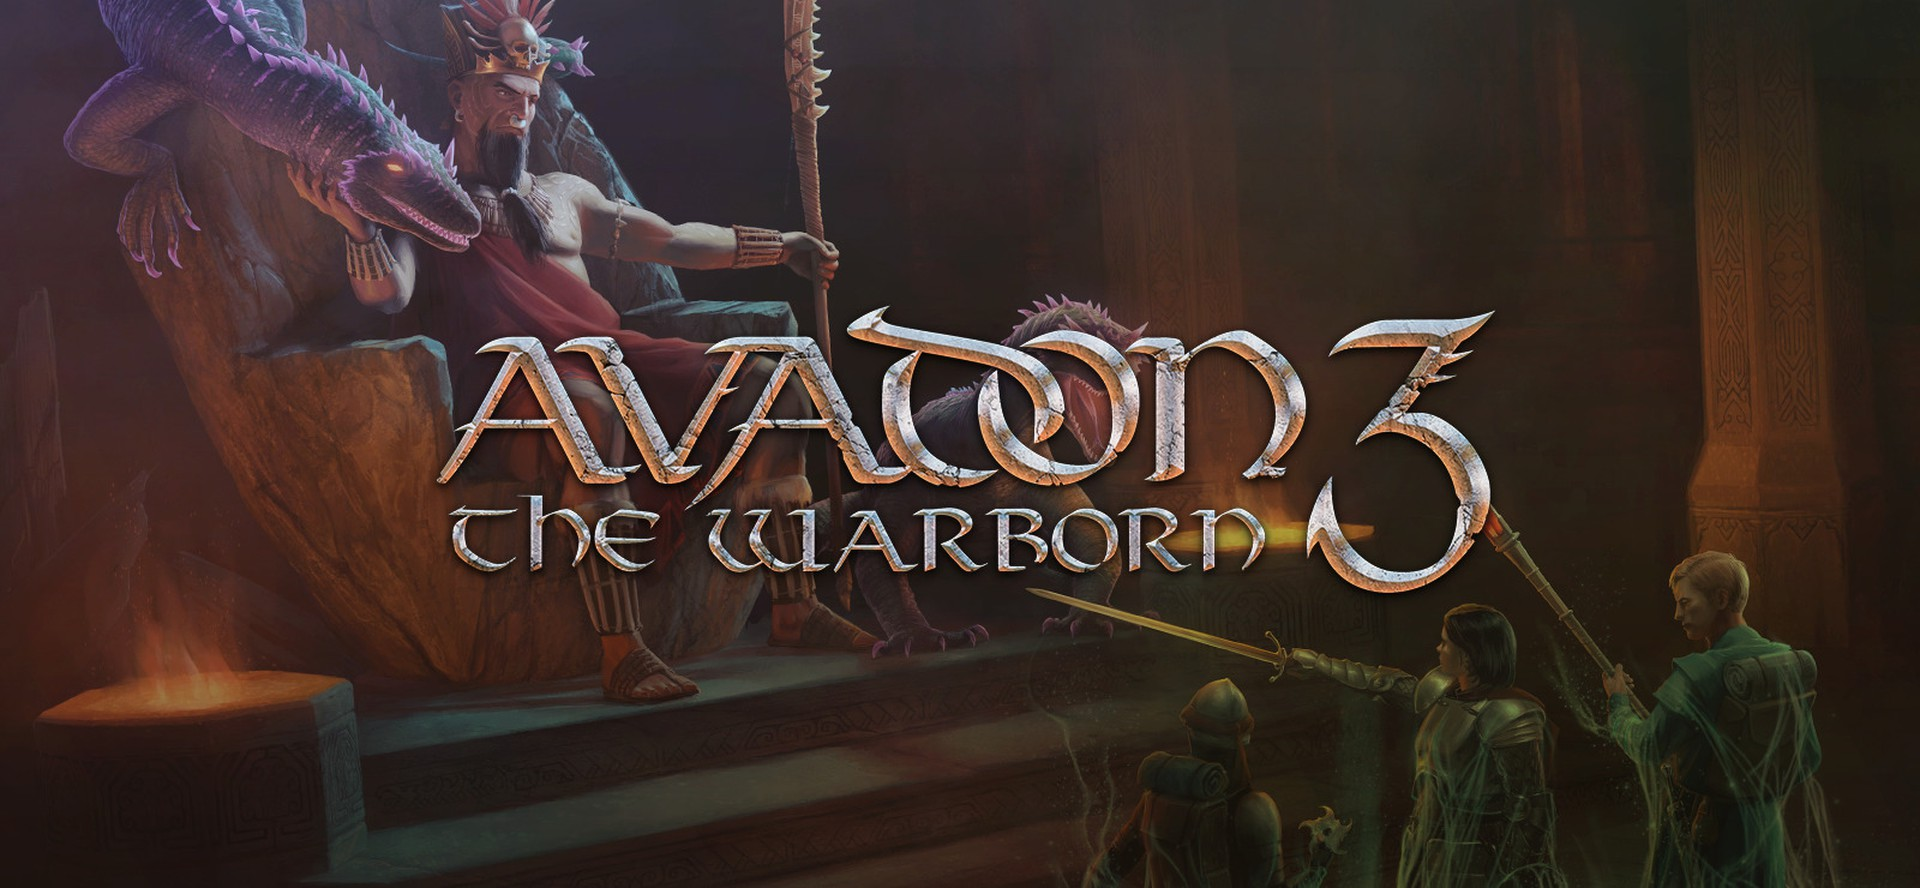 Avadon 3: The Warborn Video